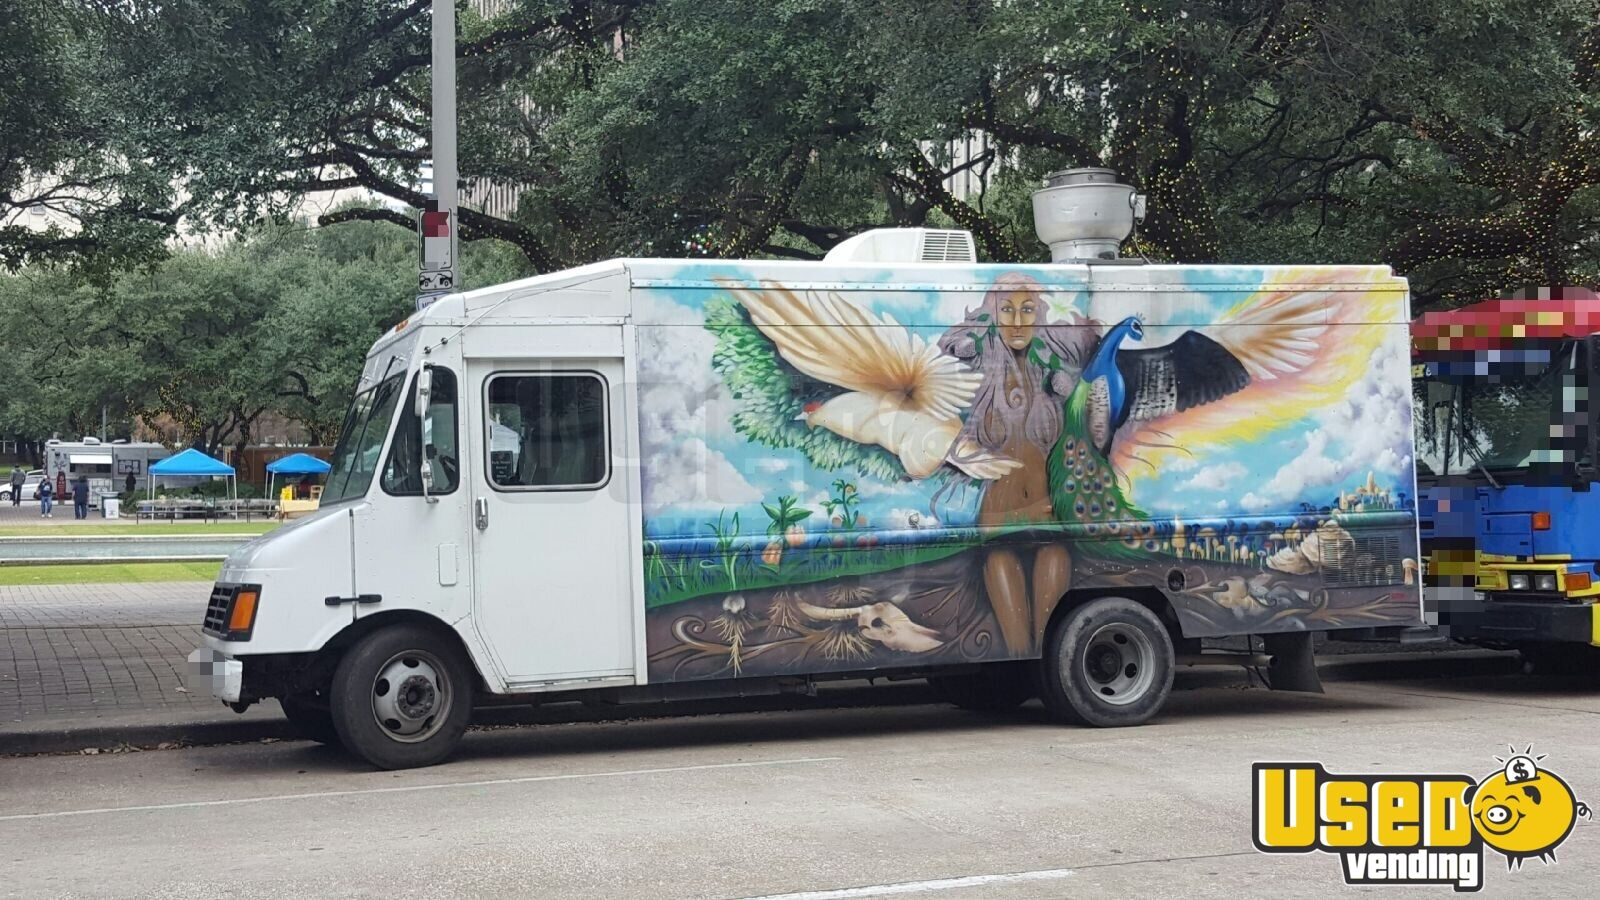 2003 Chevy Workhorse All-purpose Food Truck Air Conditioning Texas Gas Engine for Sale - 2